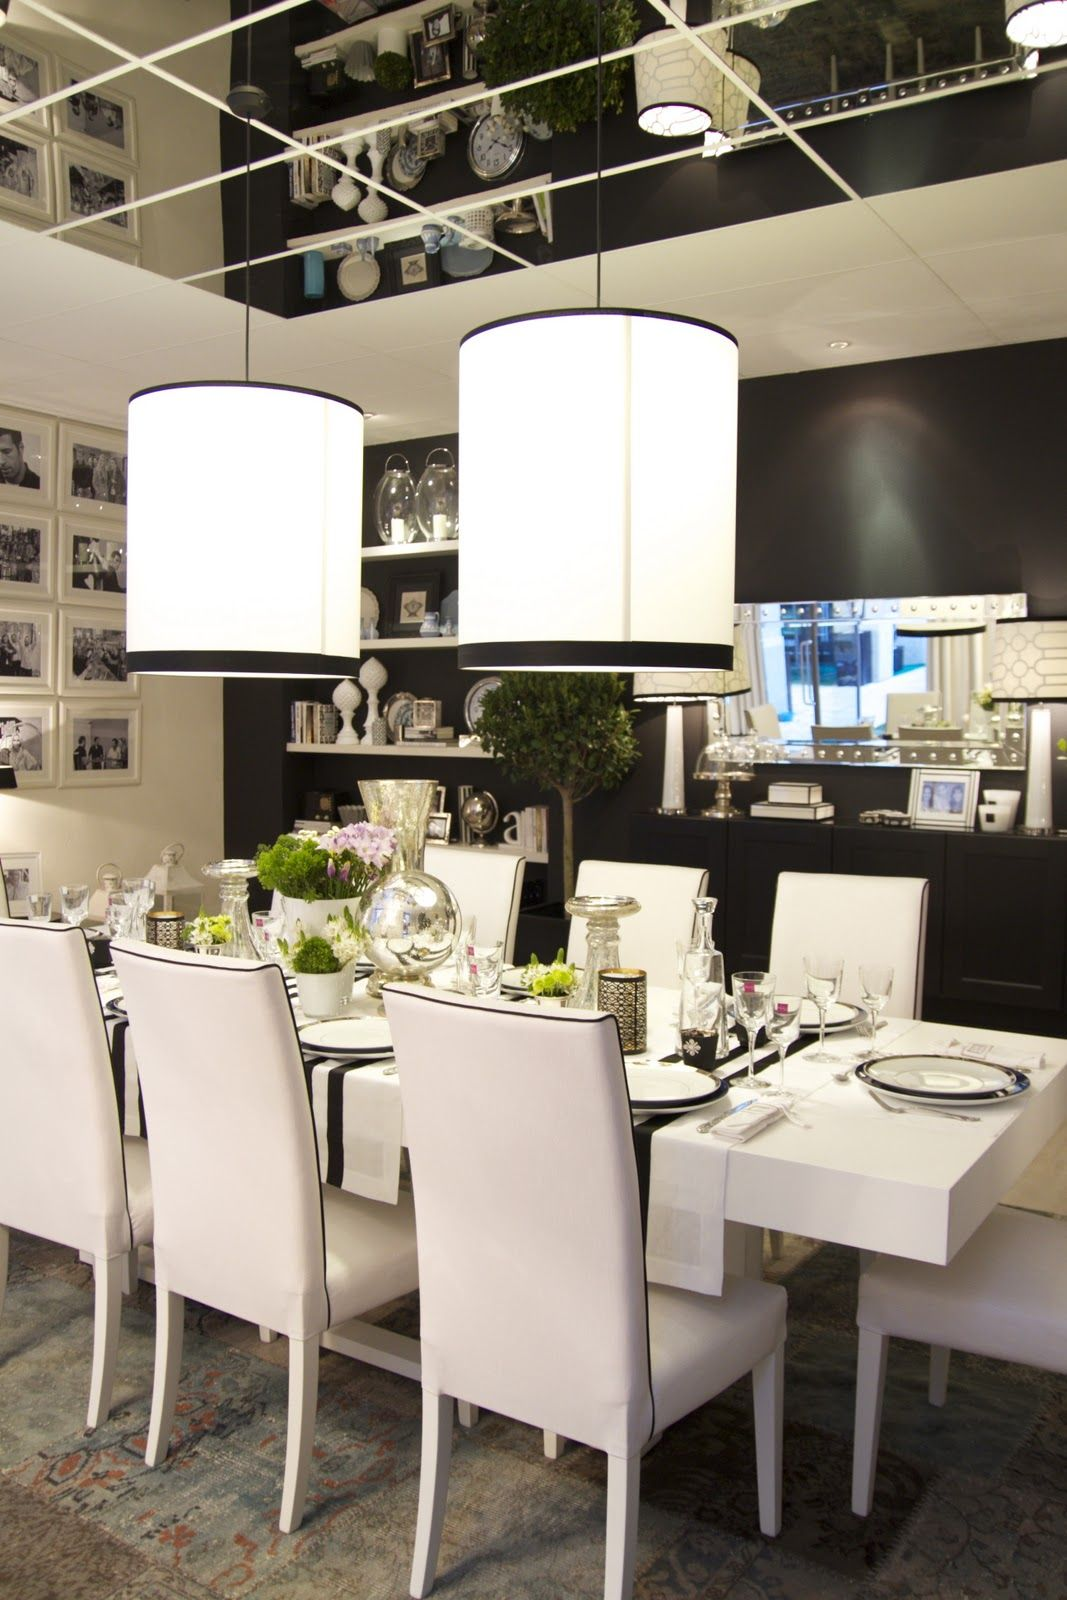 Home interior ceiling design pin by deedee on to dine for  pinterest  room ideas